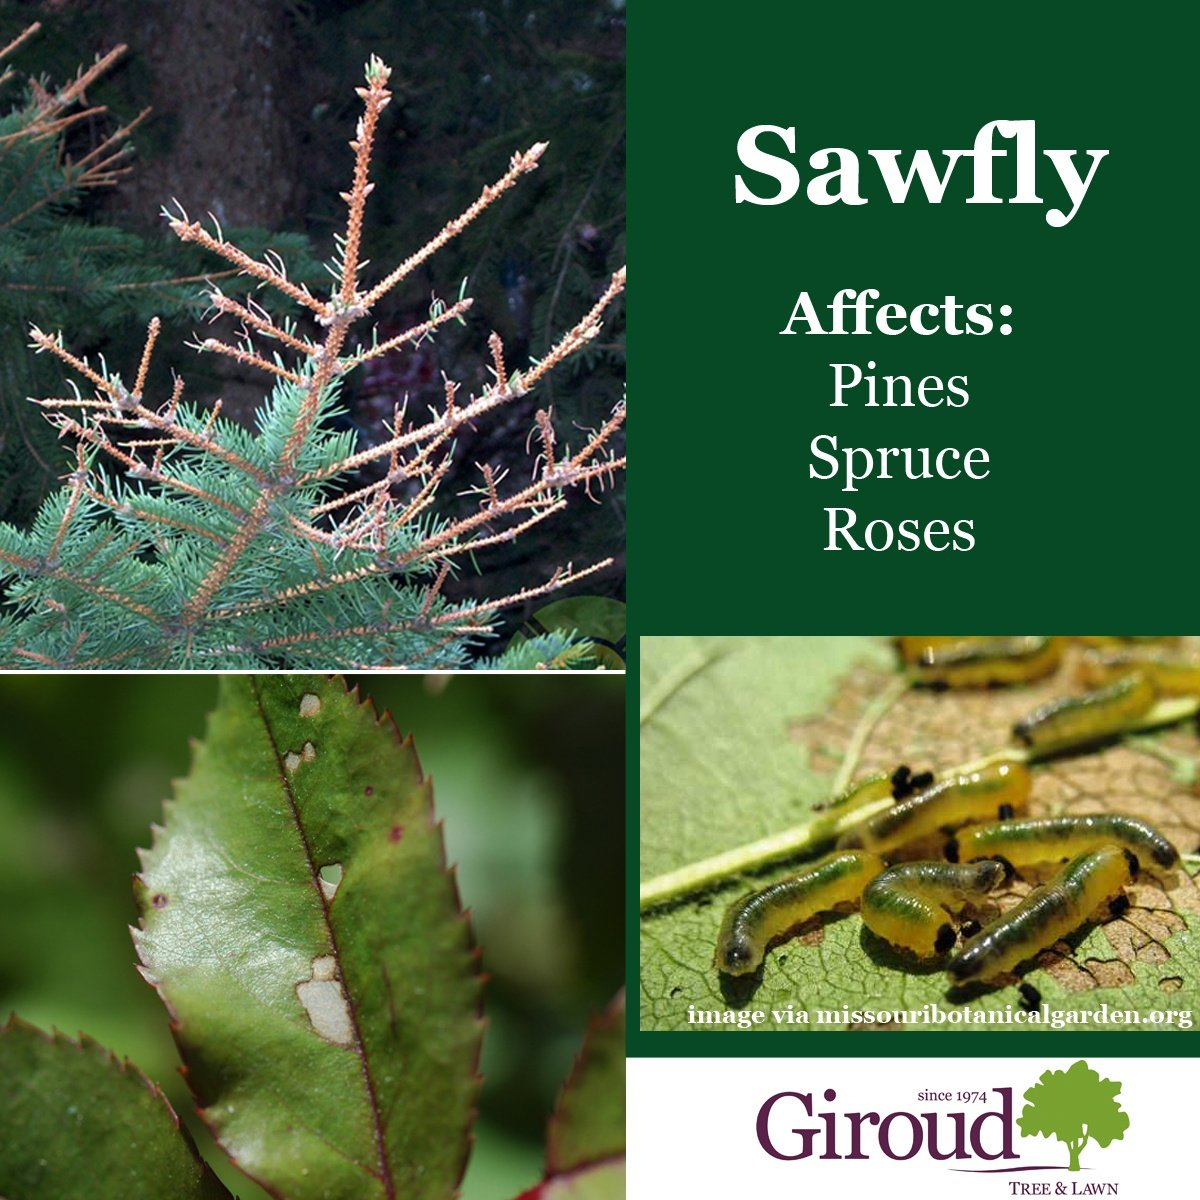 2018-Top-5-Damaging-Insects-You-Need-to-Watch-for-on-trees-and-shrubs-Saw-Fly-Facts